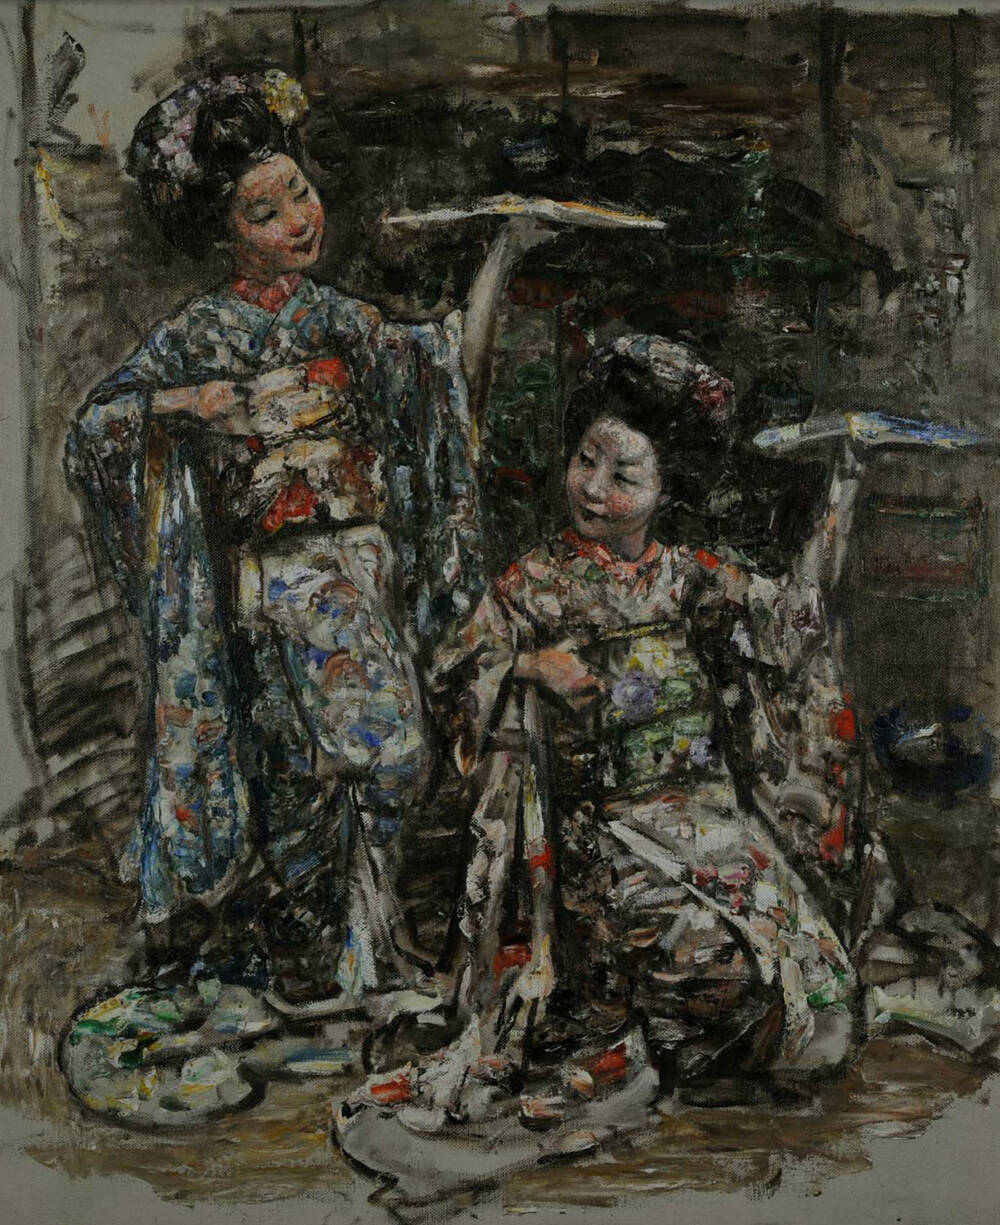 An oil painting of the photo of 2 Japanese women dancing with fans, the 1 on the left standing and the other crouching.